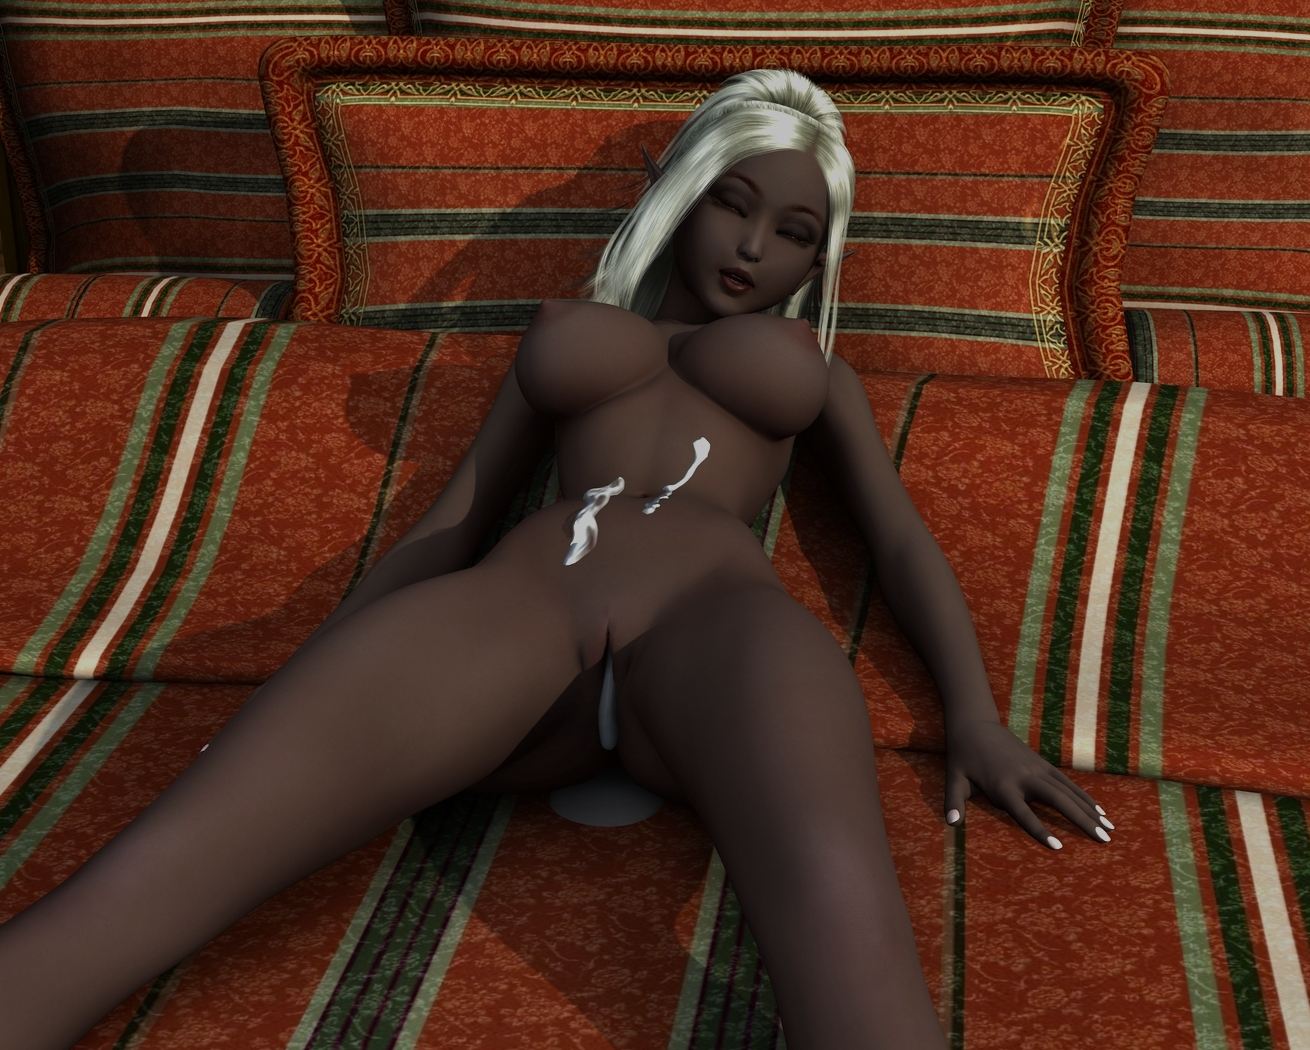 Dark elf porn image naked videos